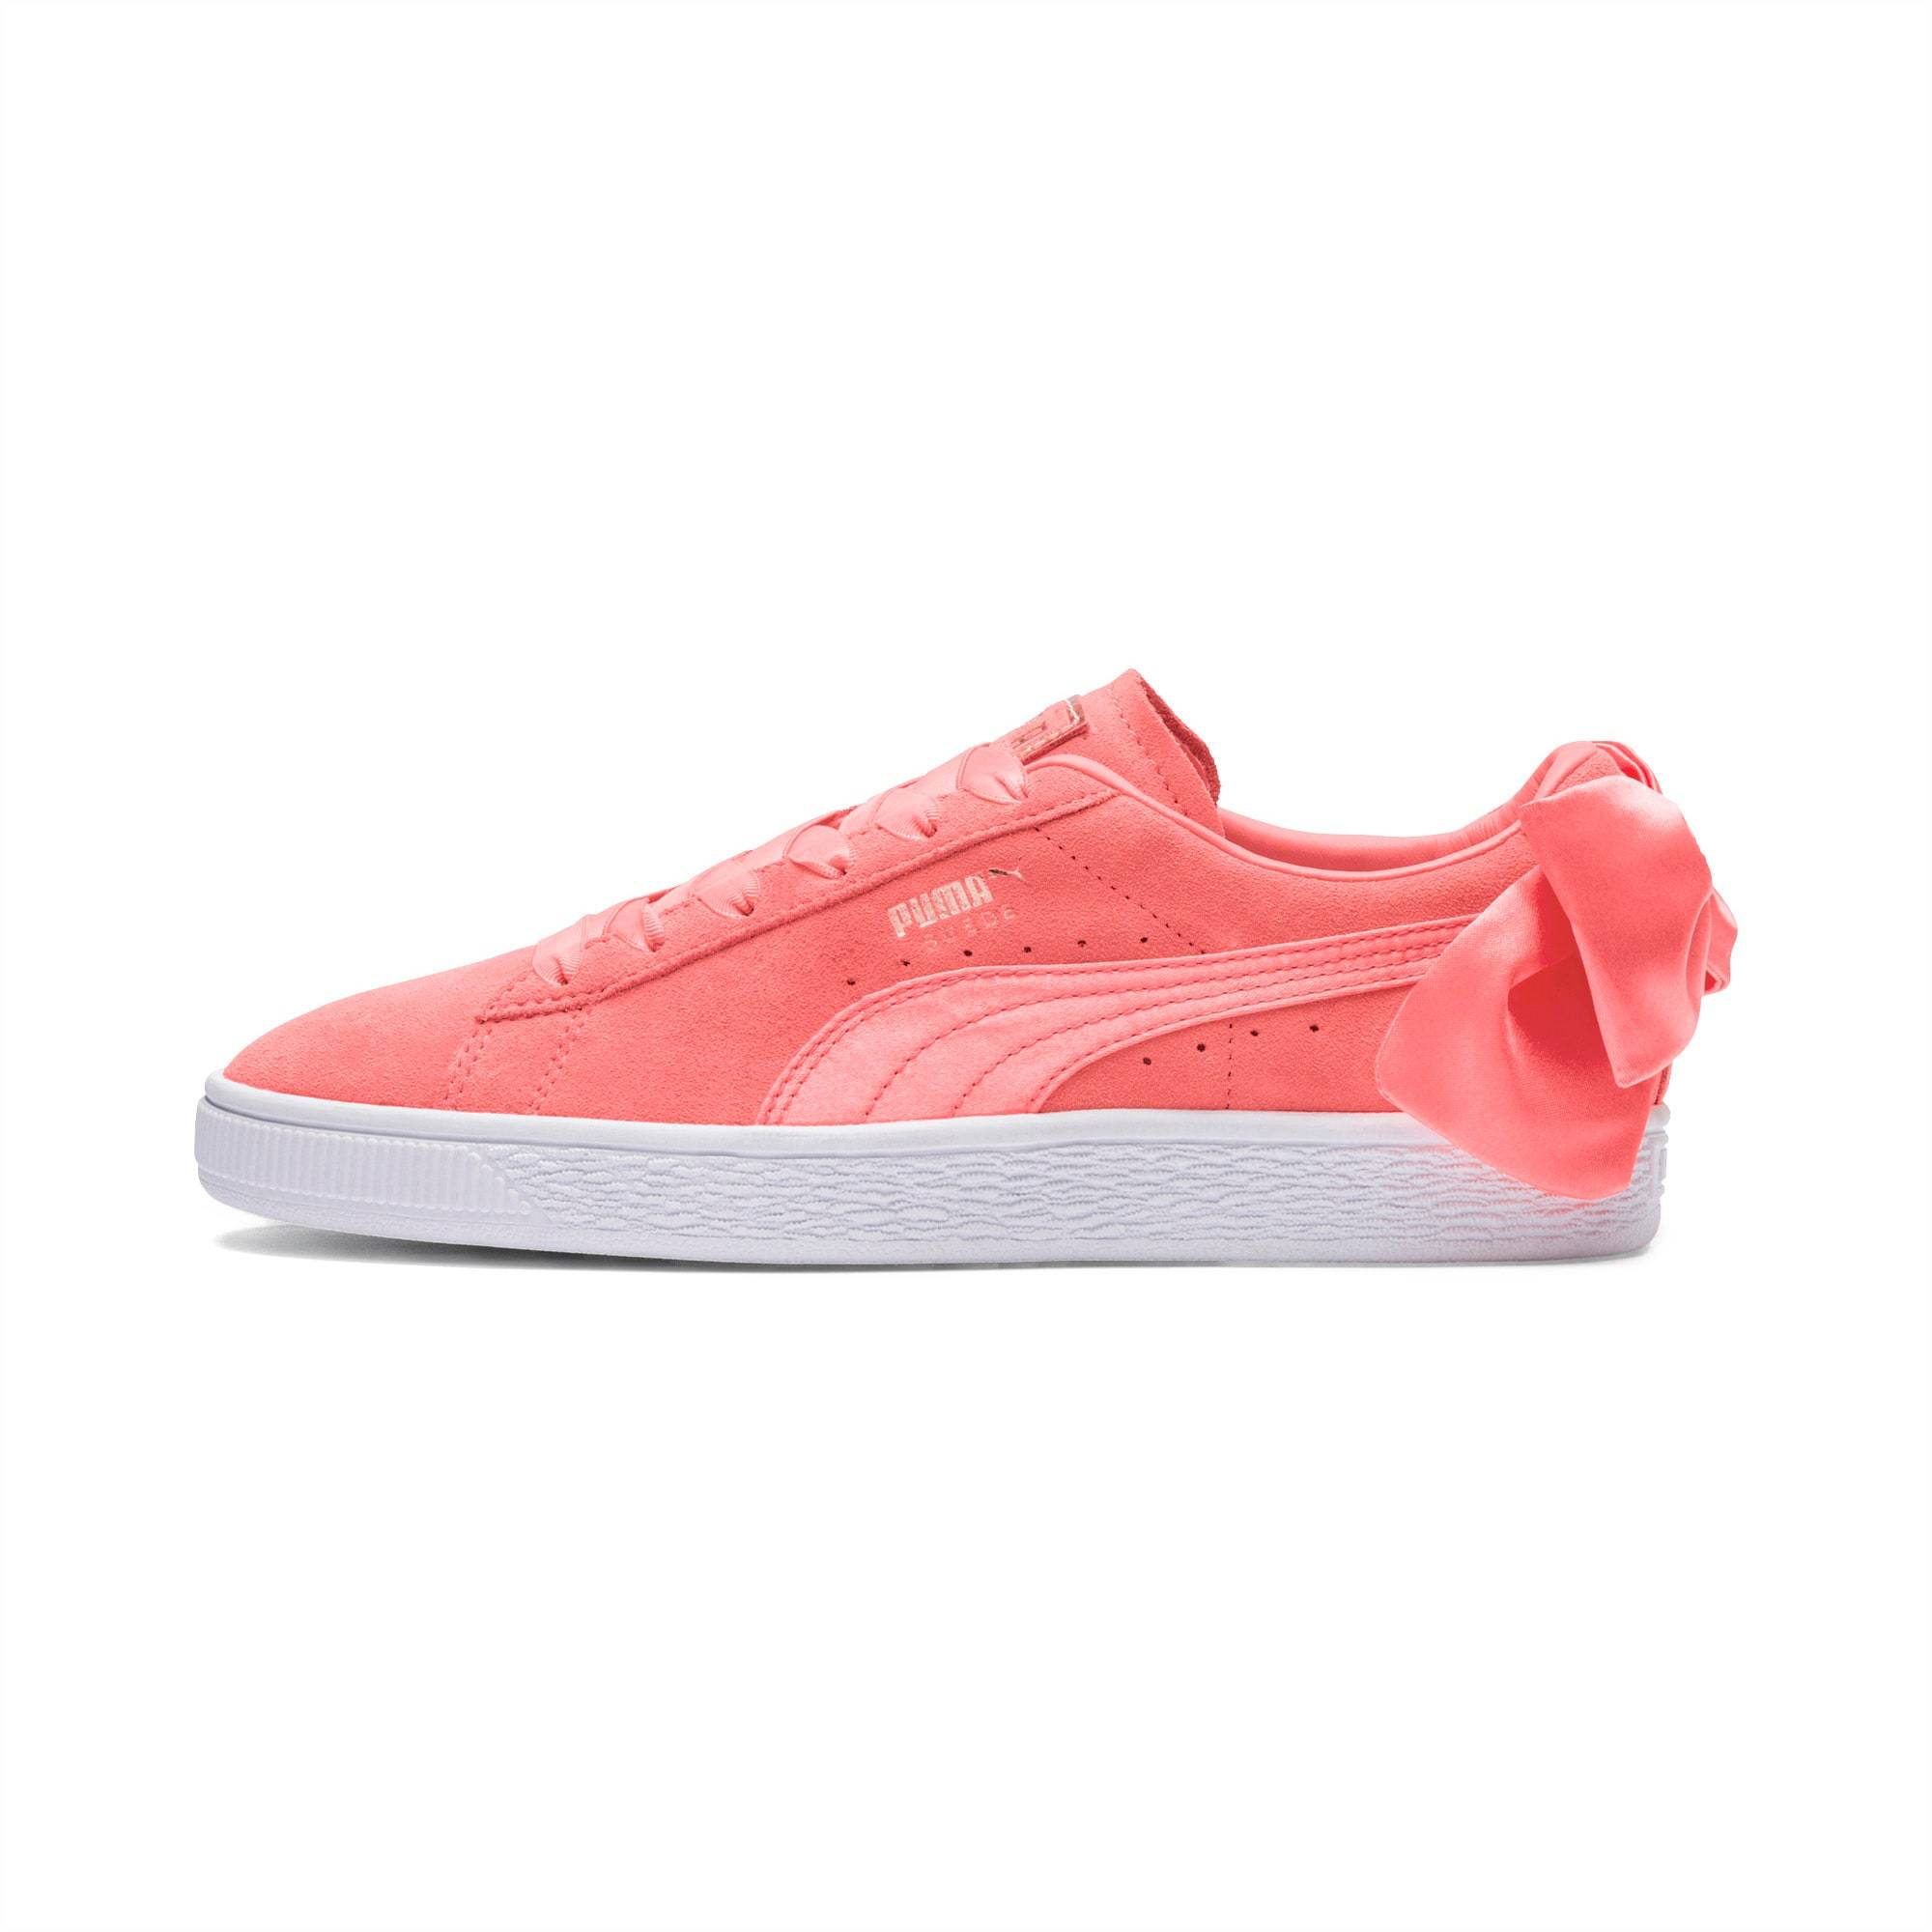 PUMA Chaussure Suede Bow pour Femme, Rose, Taille 40, Chaussures